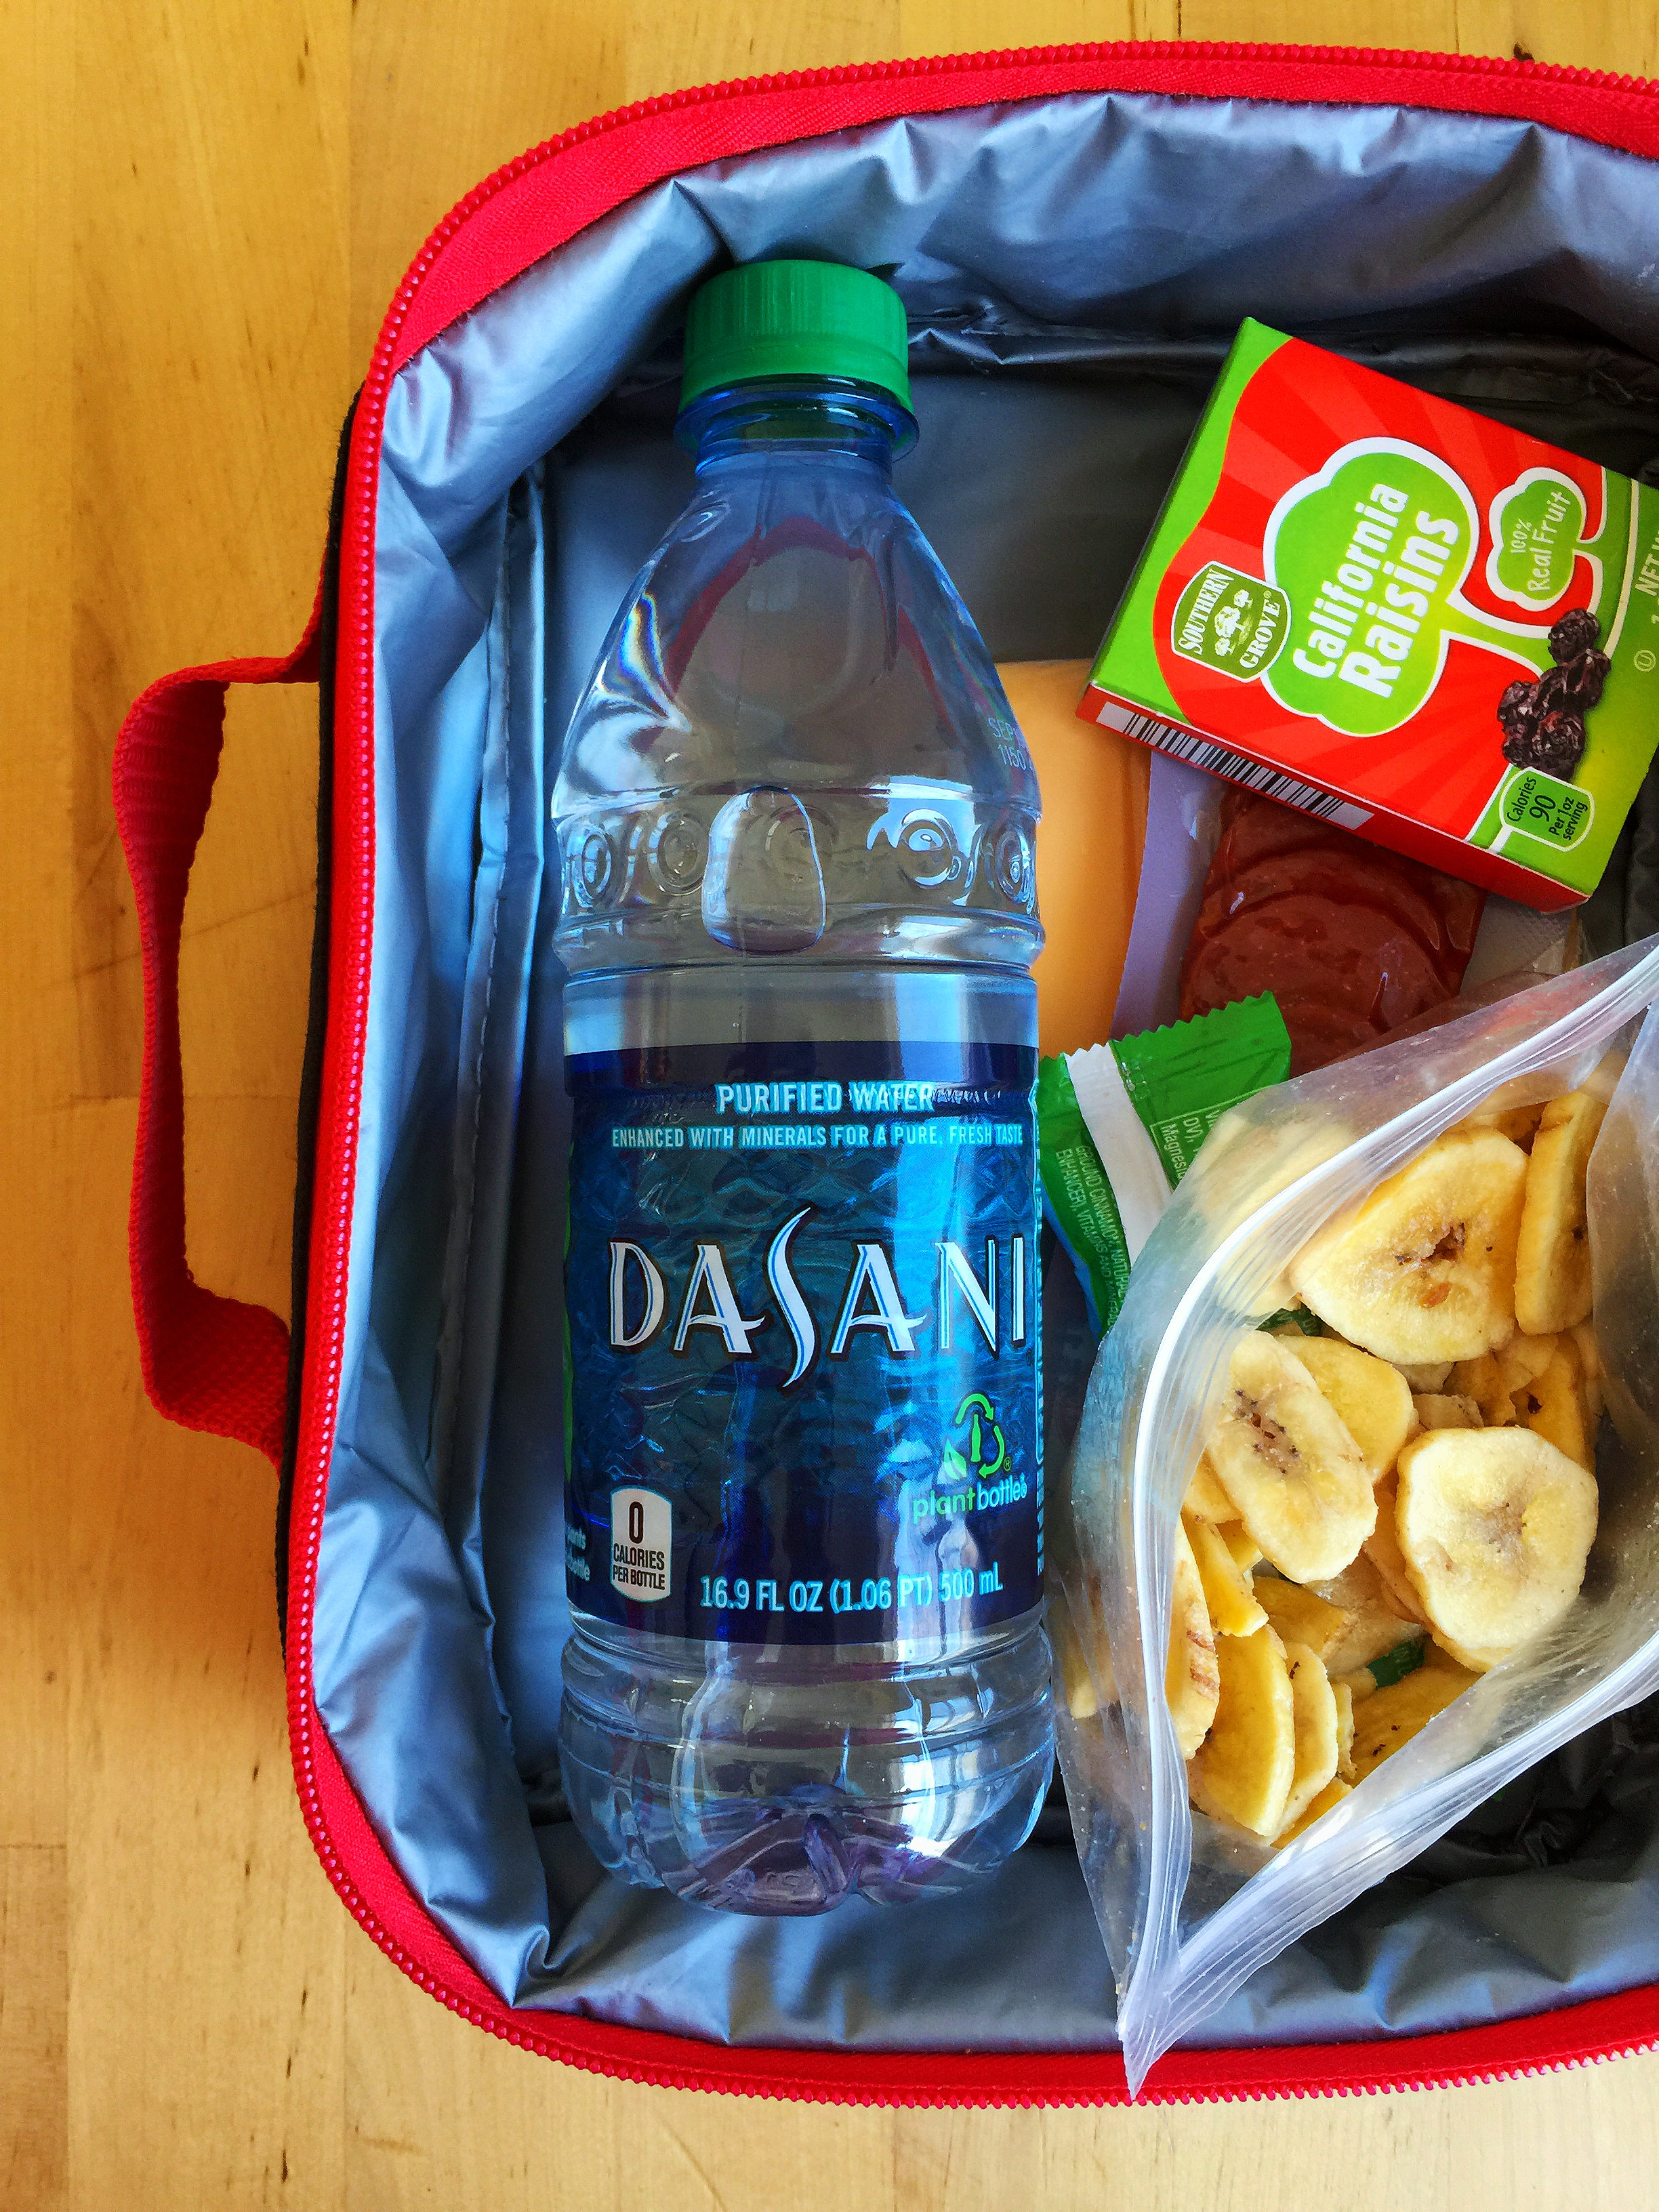 Keep School Lunches Sustainable With Desani PlantBottle® © www.roastedbeanz.com #GreenBottleCap #ad #datarank